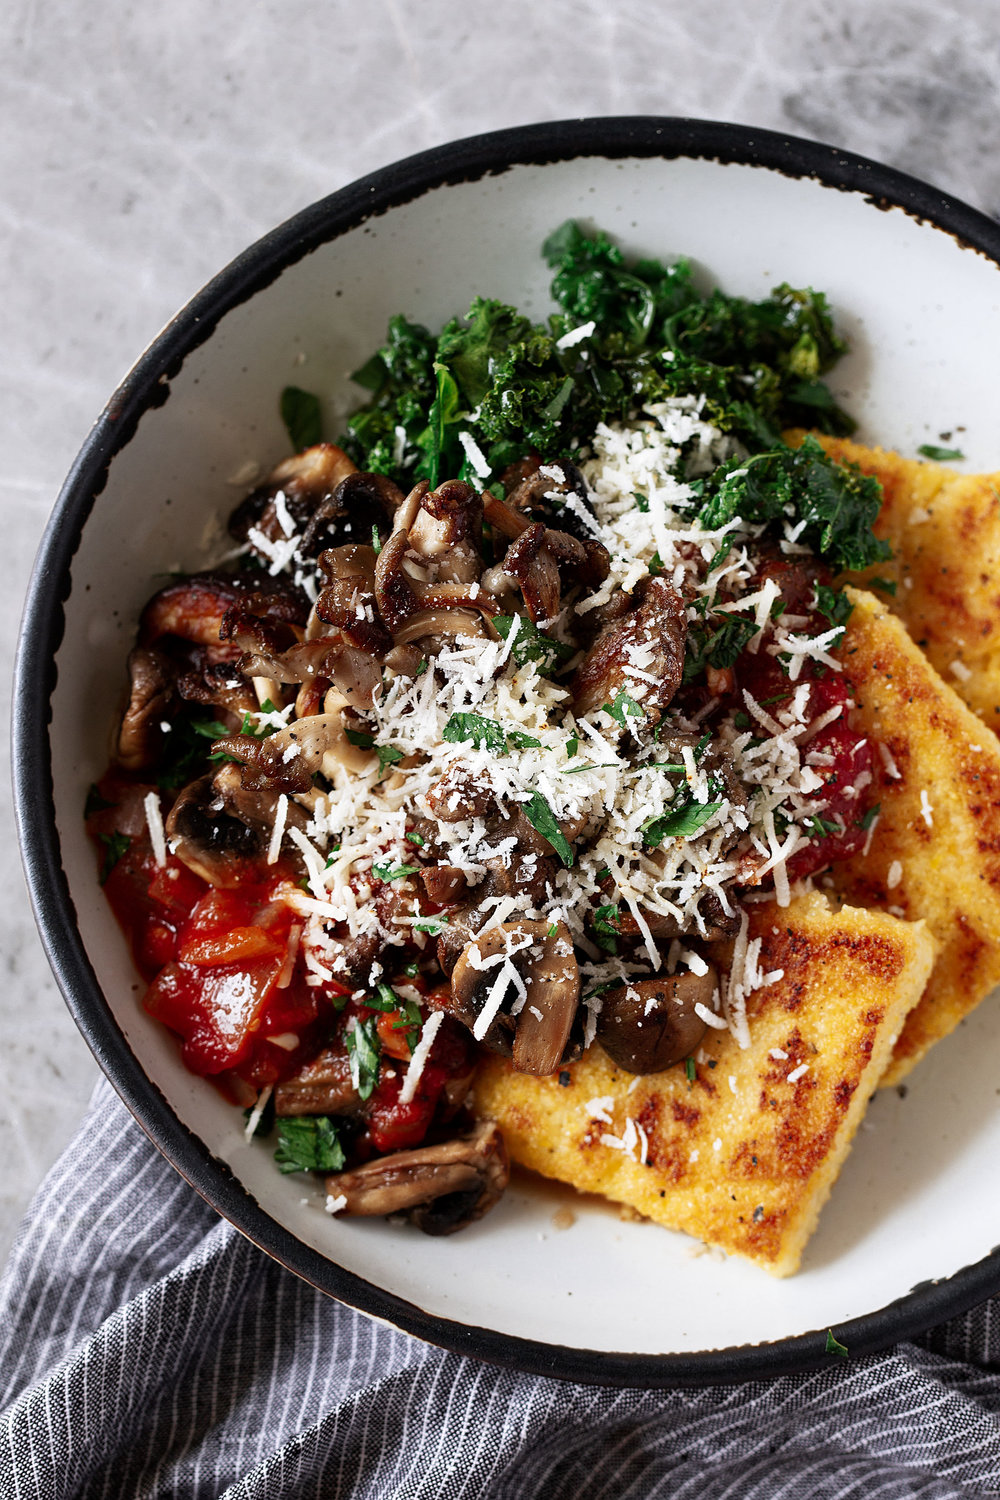 Crispy Polenta with Spicy Tomato Sauce, Sautéed Kale & Mushroomscloseup cooking with cocktail rings